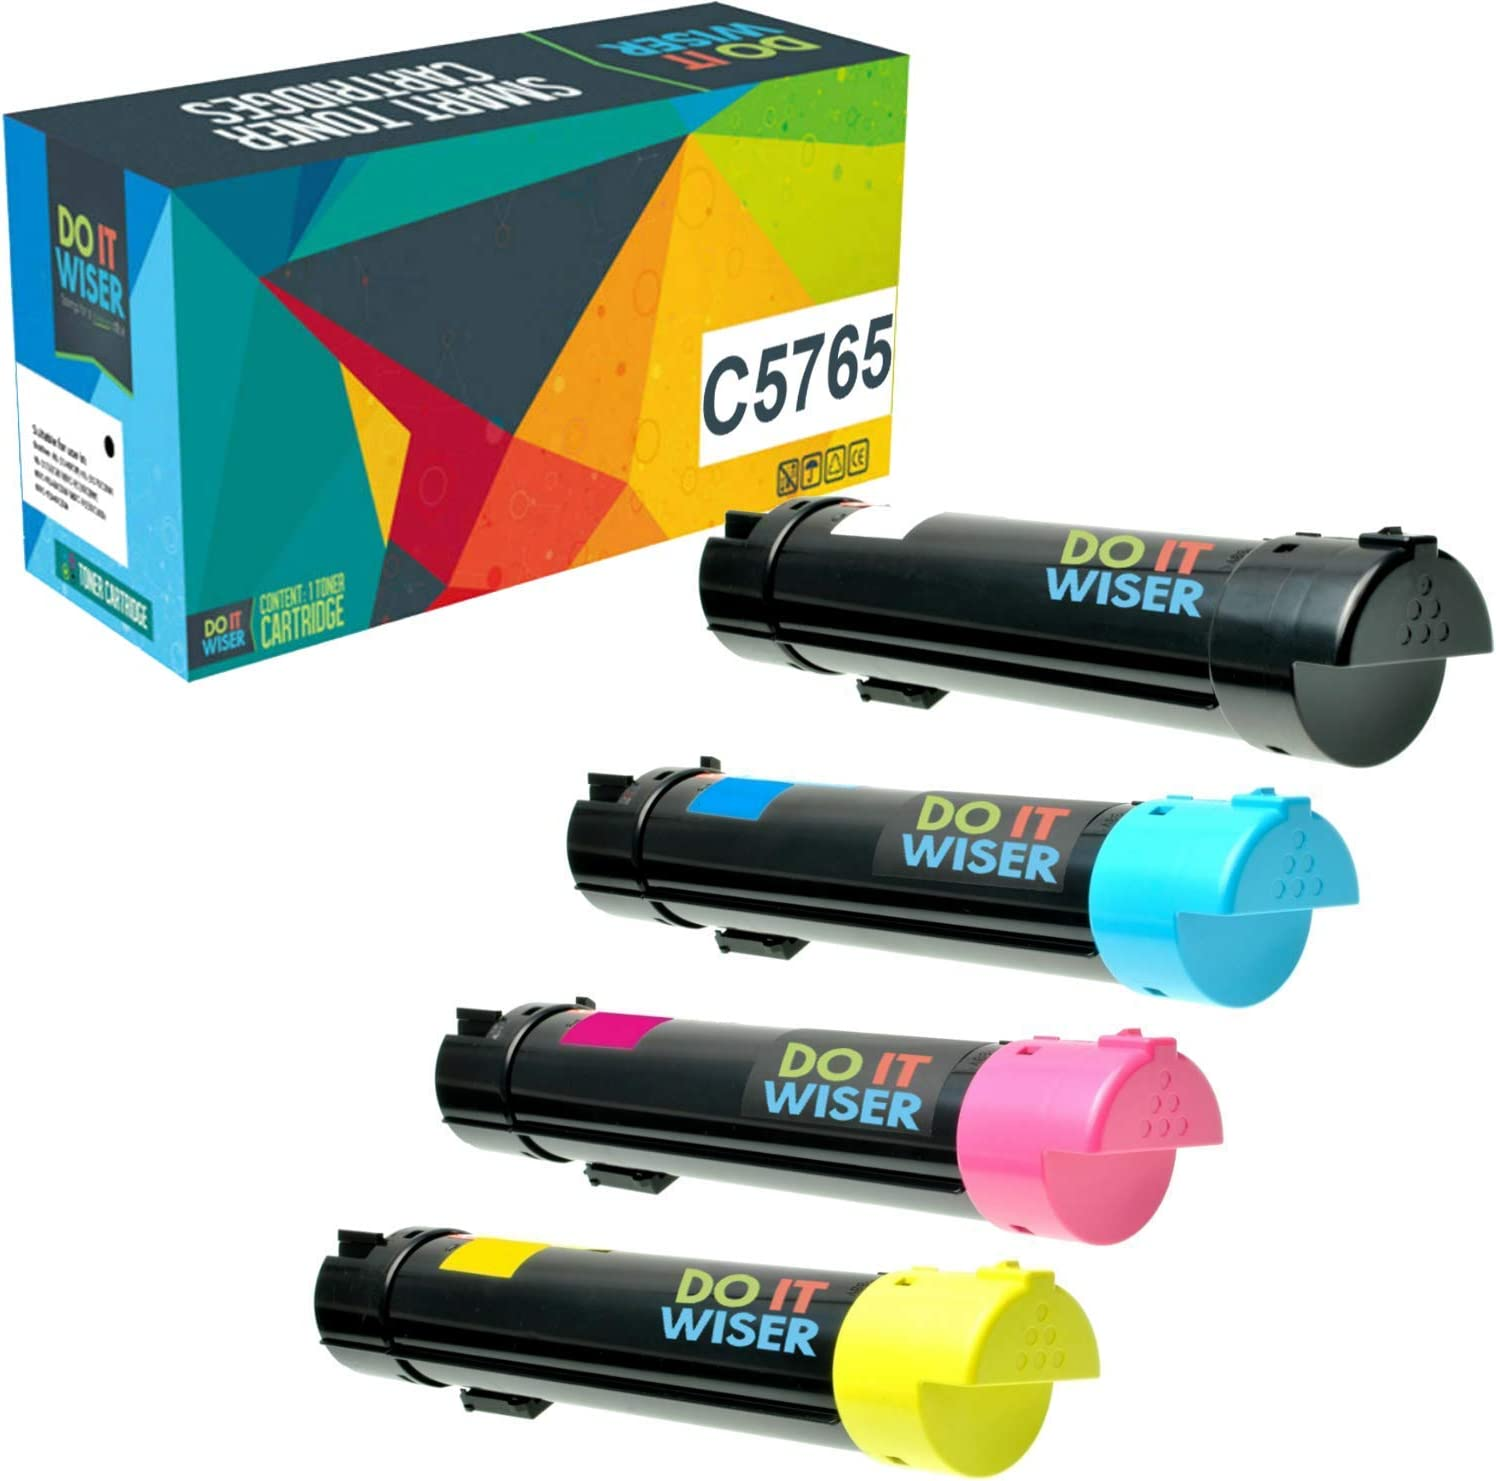 Do it Wiser Compatible Toner Cartridge Replacement for Dell C5765dn C5765 High Yield (Black, Cyan, Magenta, Yellow, 4-Pack)